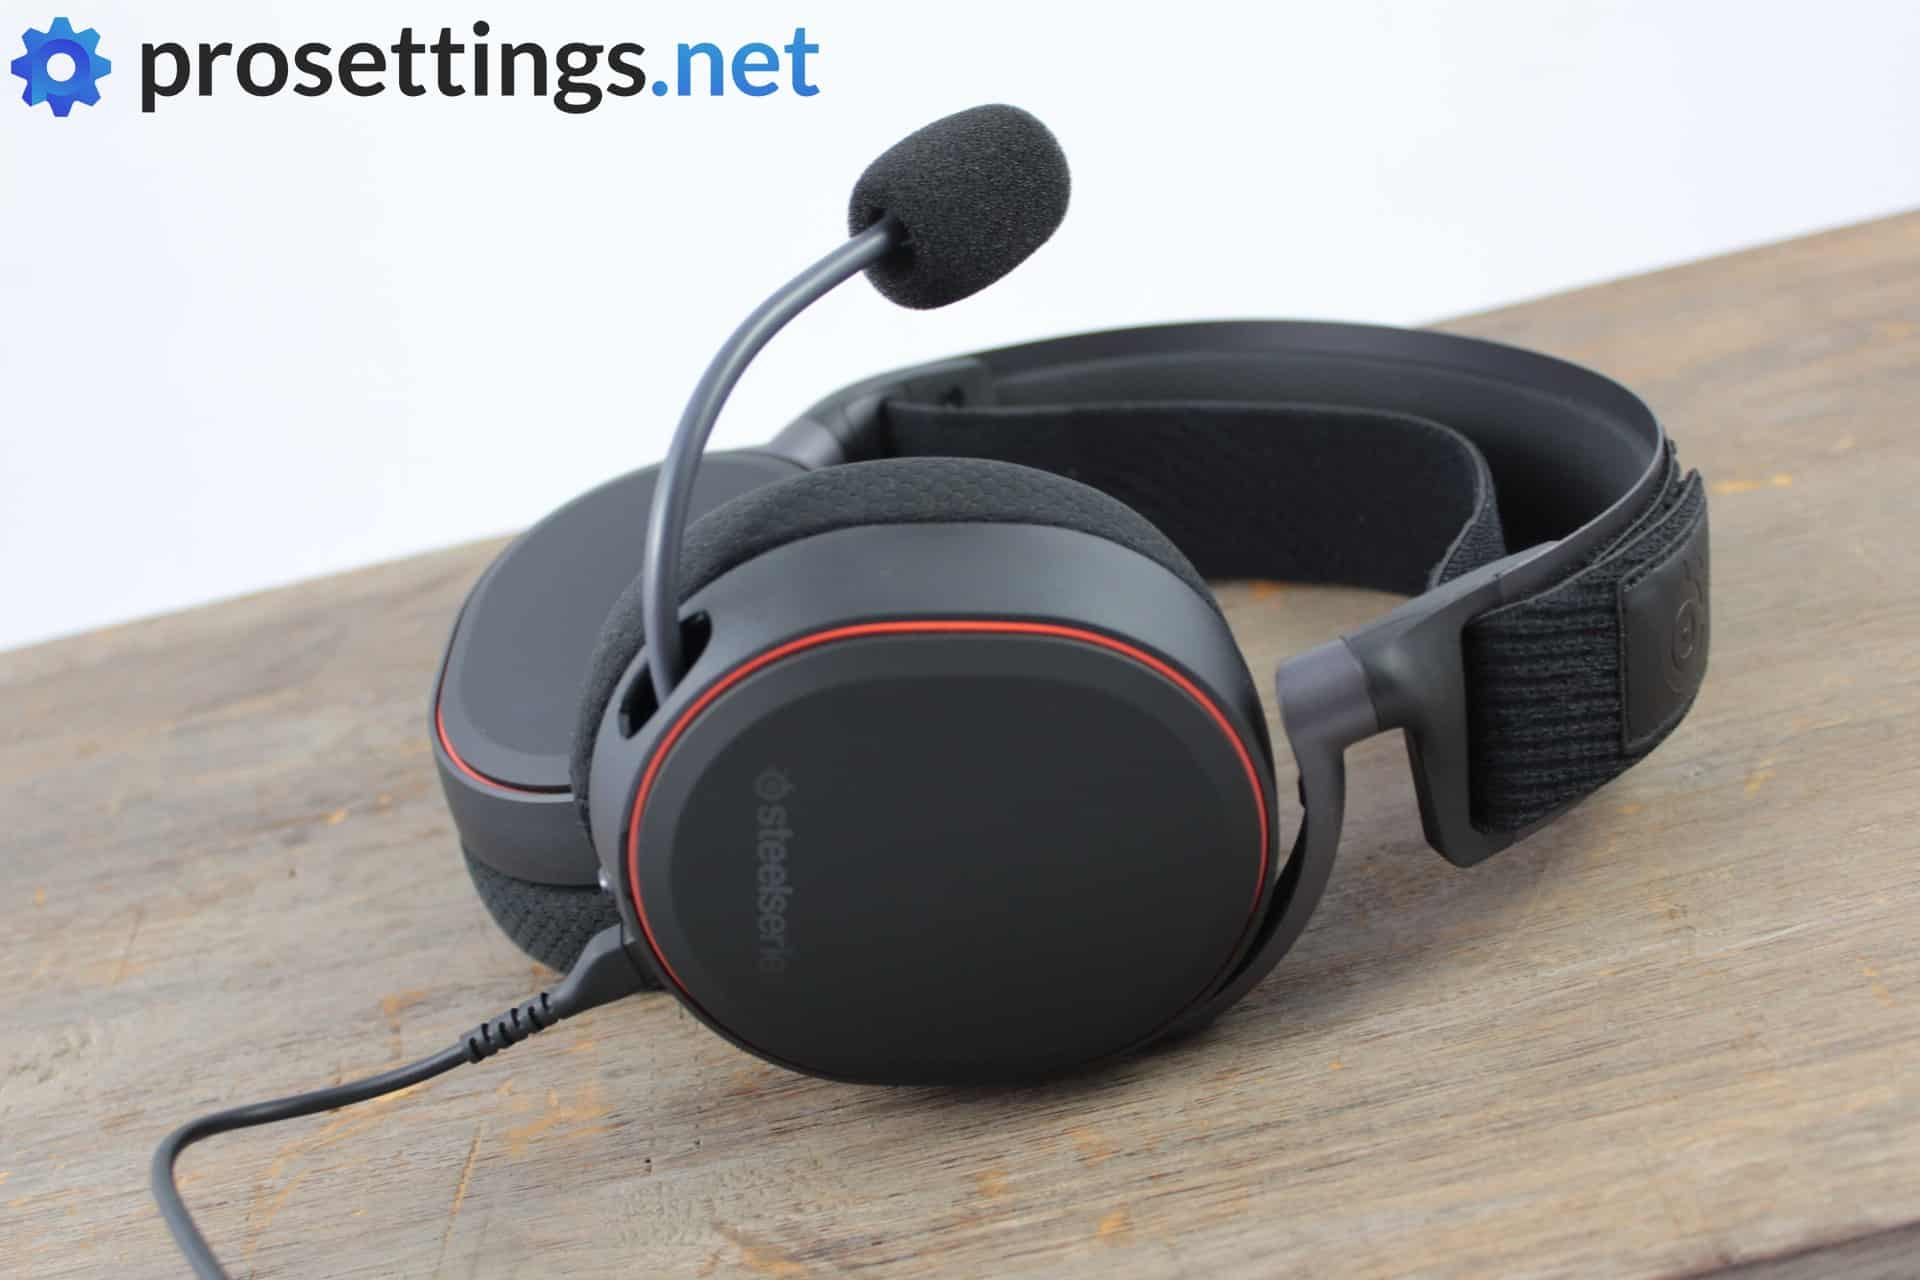 SteelSeries Arctis Pro Review First Impressions